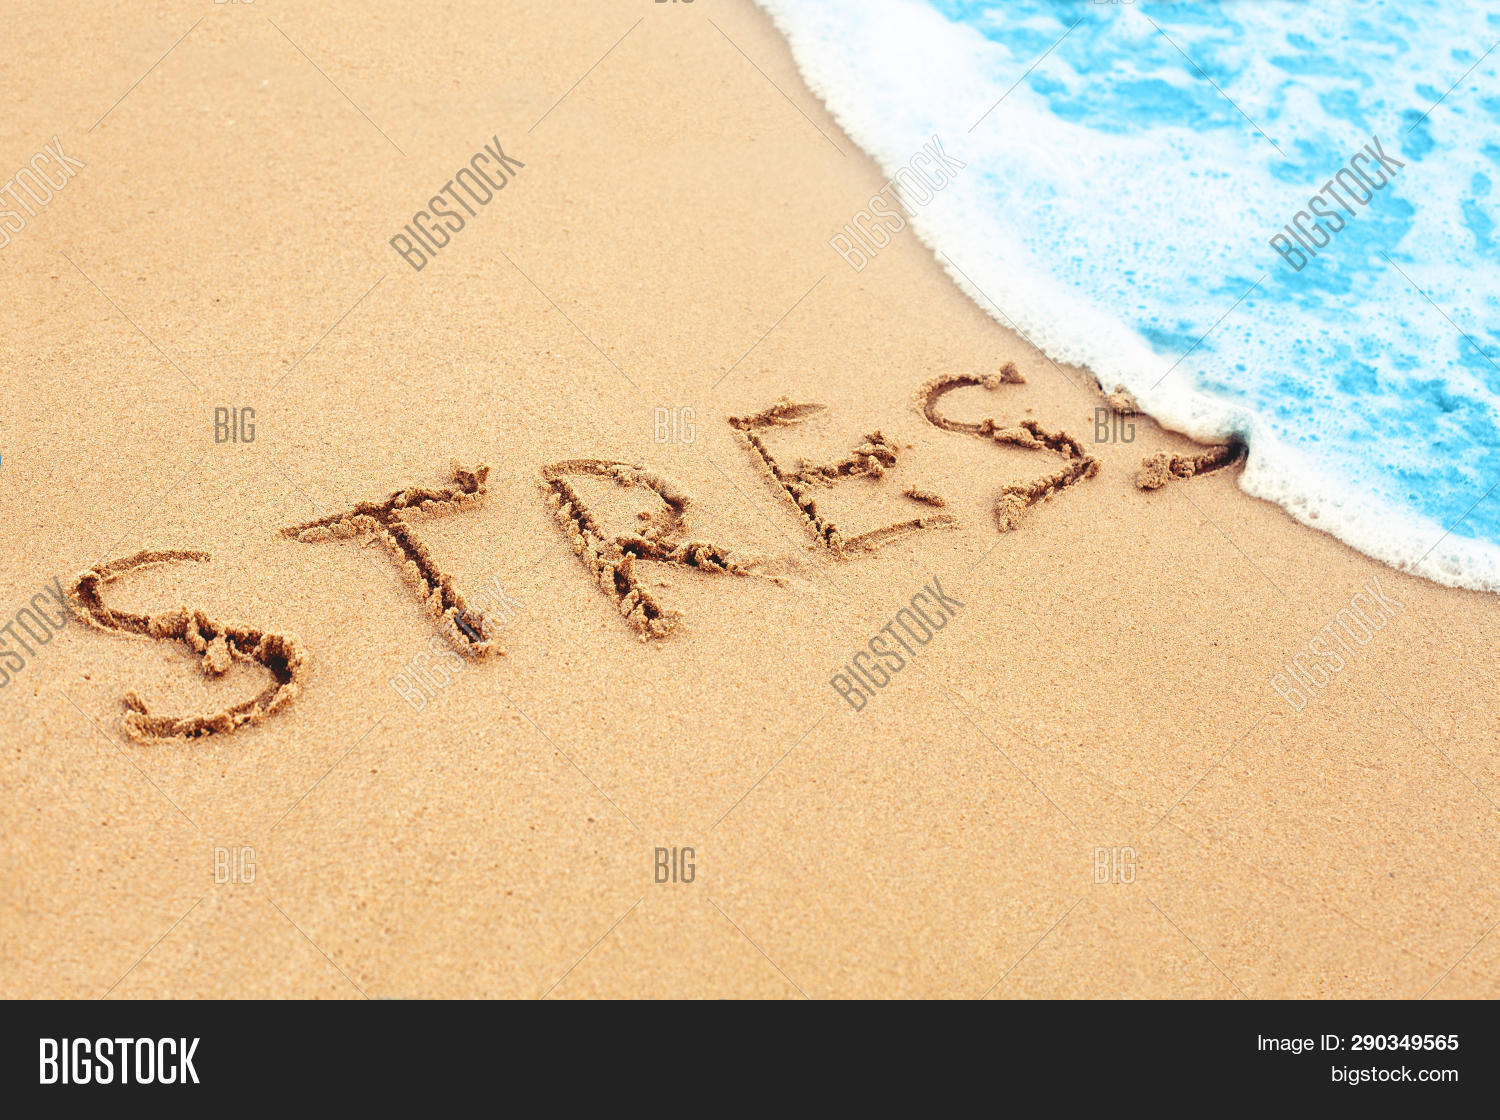 anti,away,background,beach,beautiful,blue,coast,coastline,colorful,concept,drawing,free,happiness,holiday,inscription,island,landscape,nature,no,ocean,out,relax,relaxation,resort,romantic,sand,sea,shore,stop,stress,stressed,summer,surf,surface,texture,tourism,touristic,travel,traveling,tropic,tropical,vacation,wallpaper,water,wave,zone